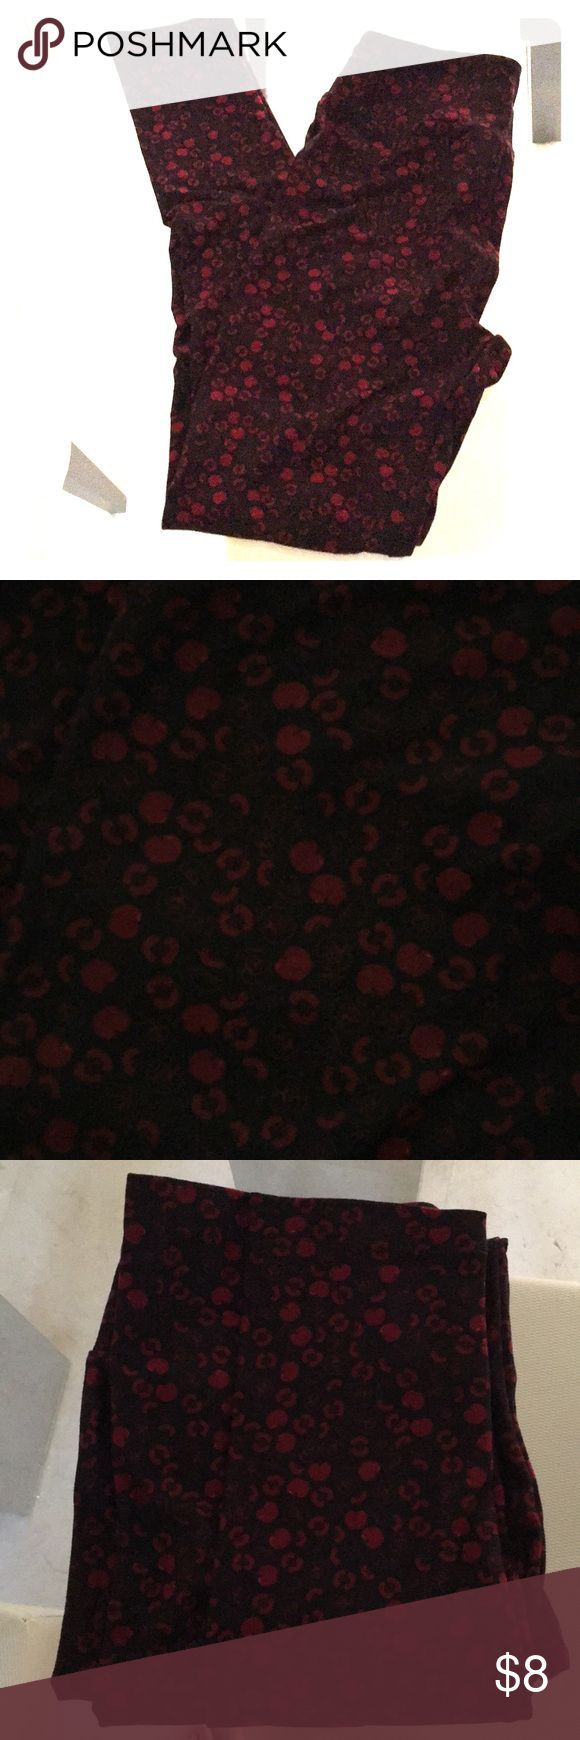 Lulu-Roe Black and red leggings Lula Roe Black and Red leggings  Never worn  Daughter doesn't like Black and Red It's for a size 2 or 4 LuLaRoe Pants Leggings